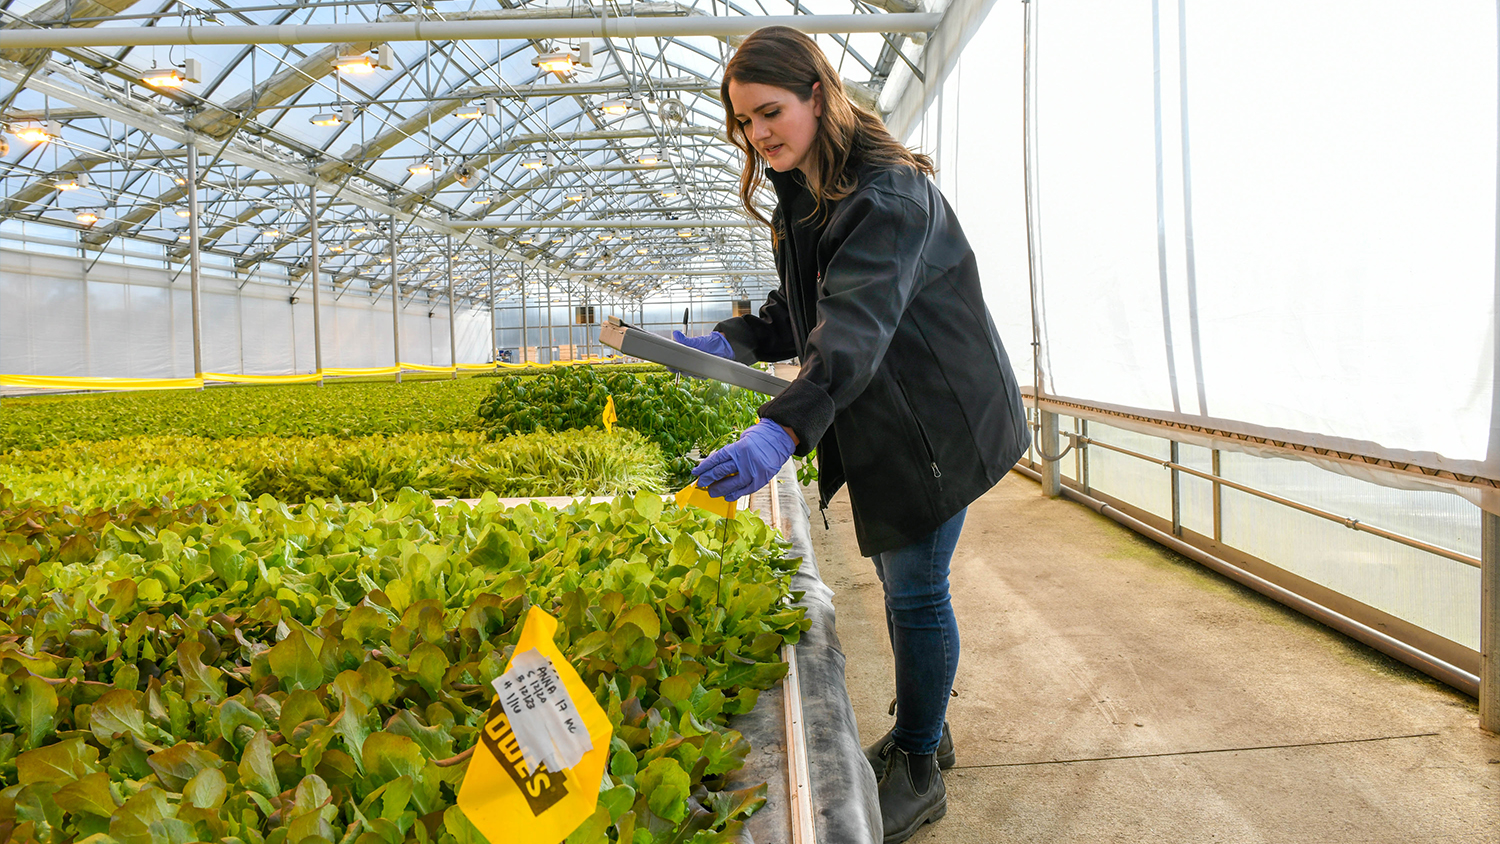 A young woman in a greenhouse examining lettuce